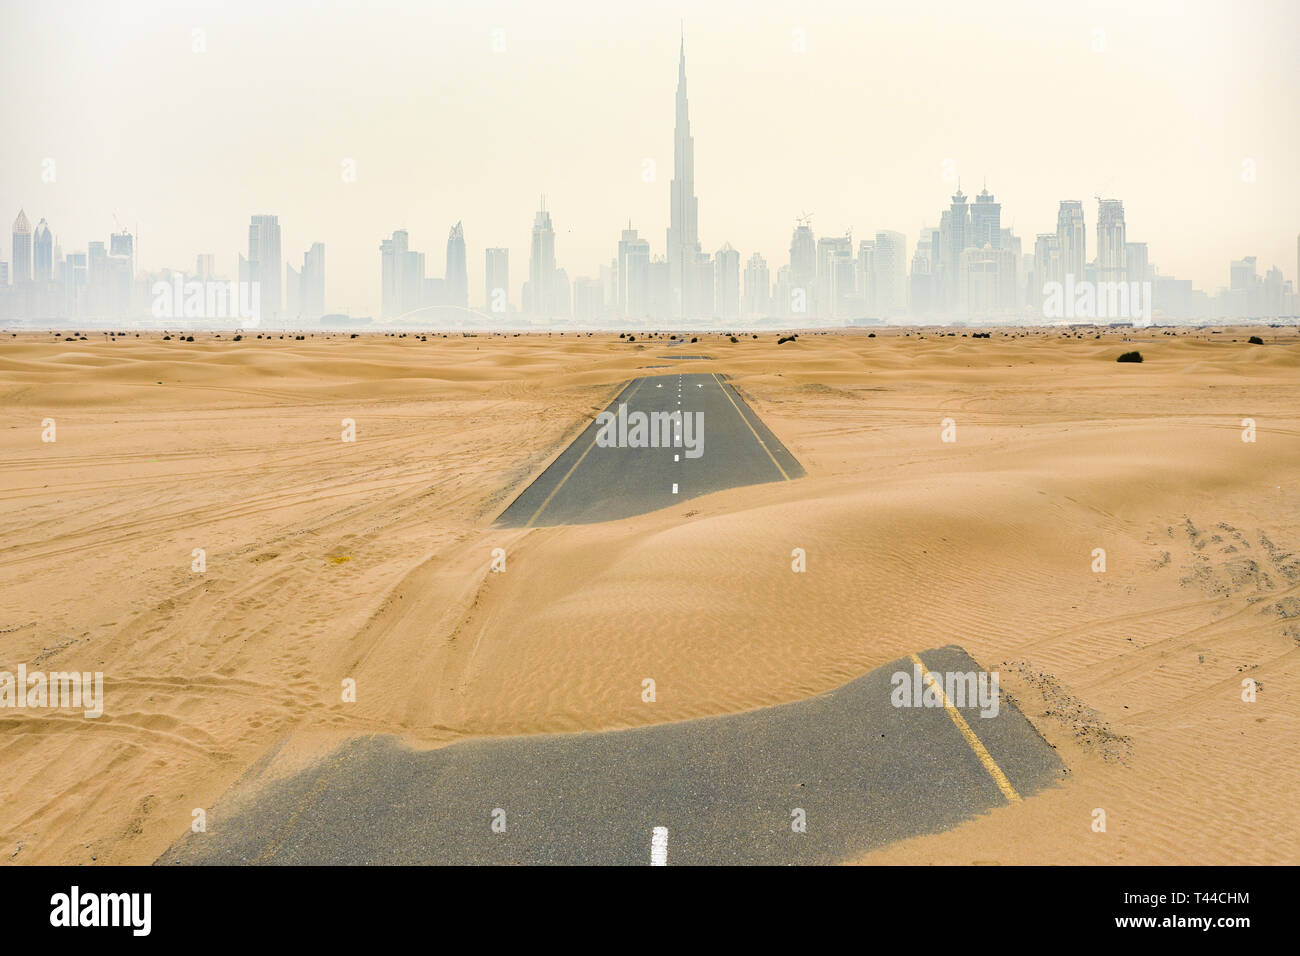 View from above, stunning aerial view of a deserted road covered by sand dunes in the middle of the Dubai desert. - Stock Image